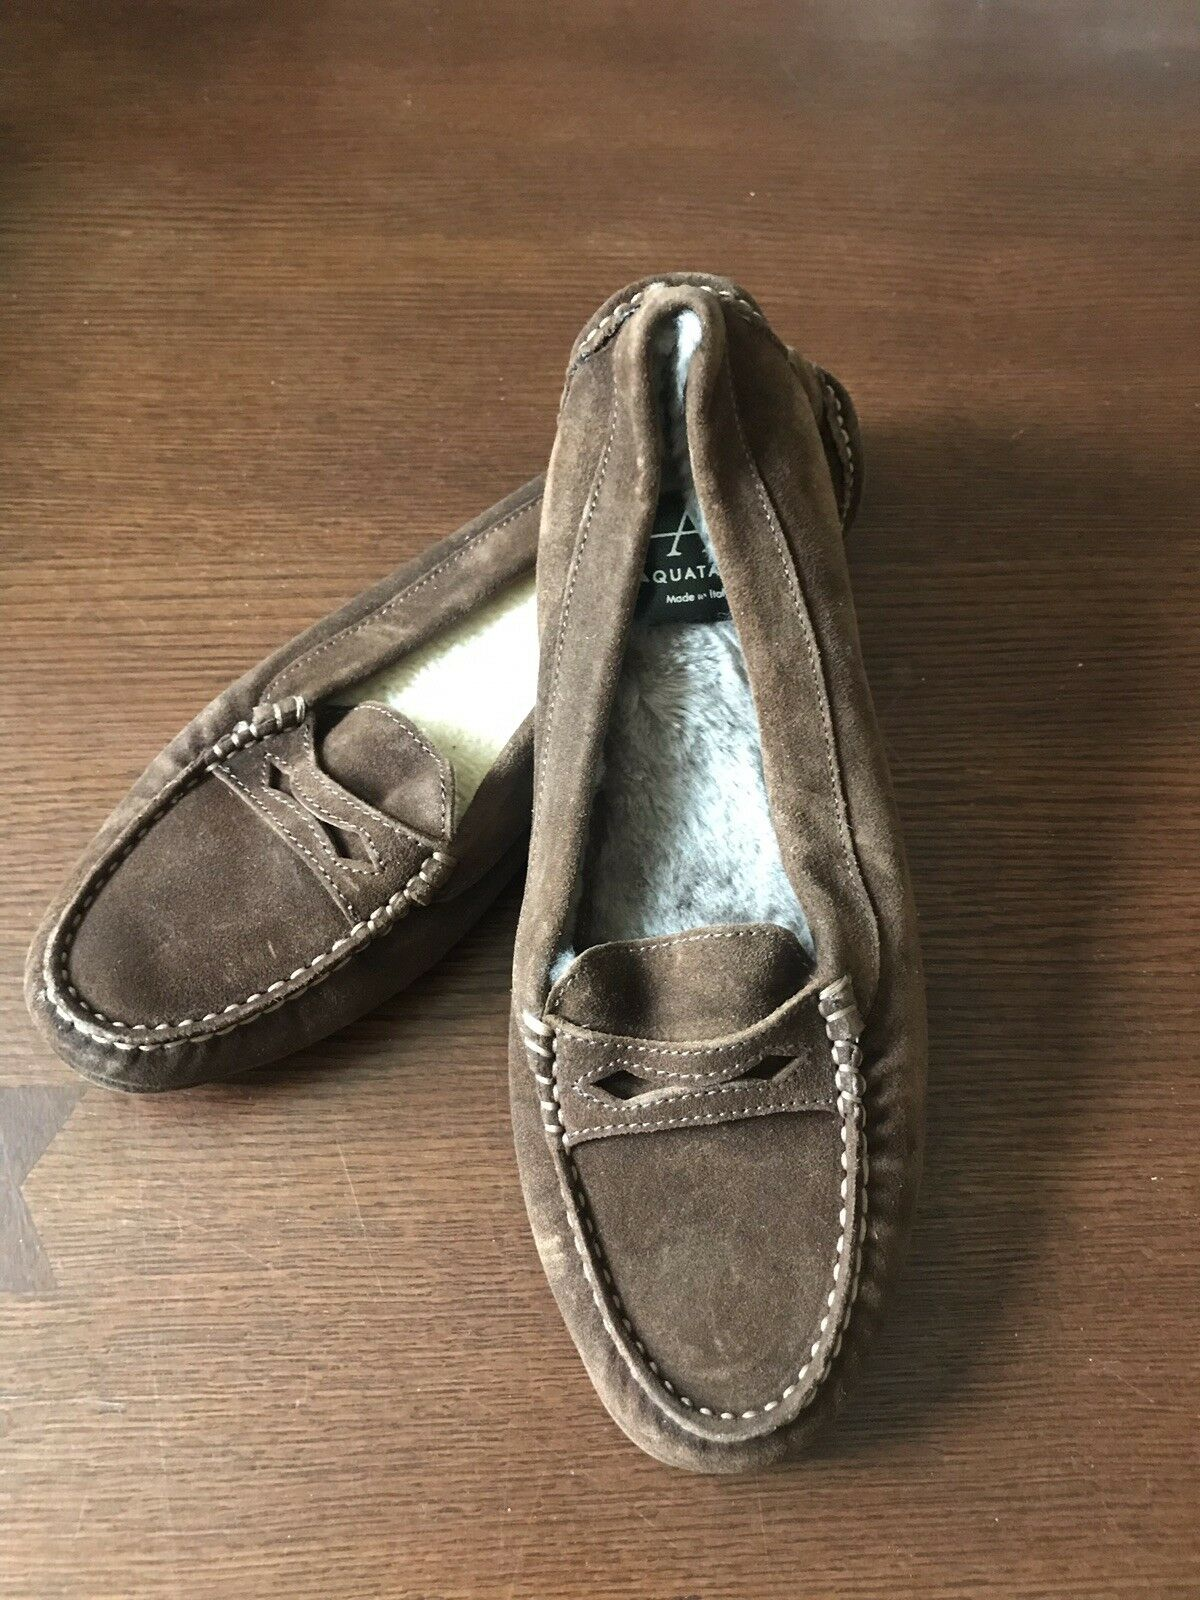 Aquatalia Chestnut marron Penny Loafer Driving chaussures Fur Lined SAMPLE 2016 NWOB